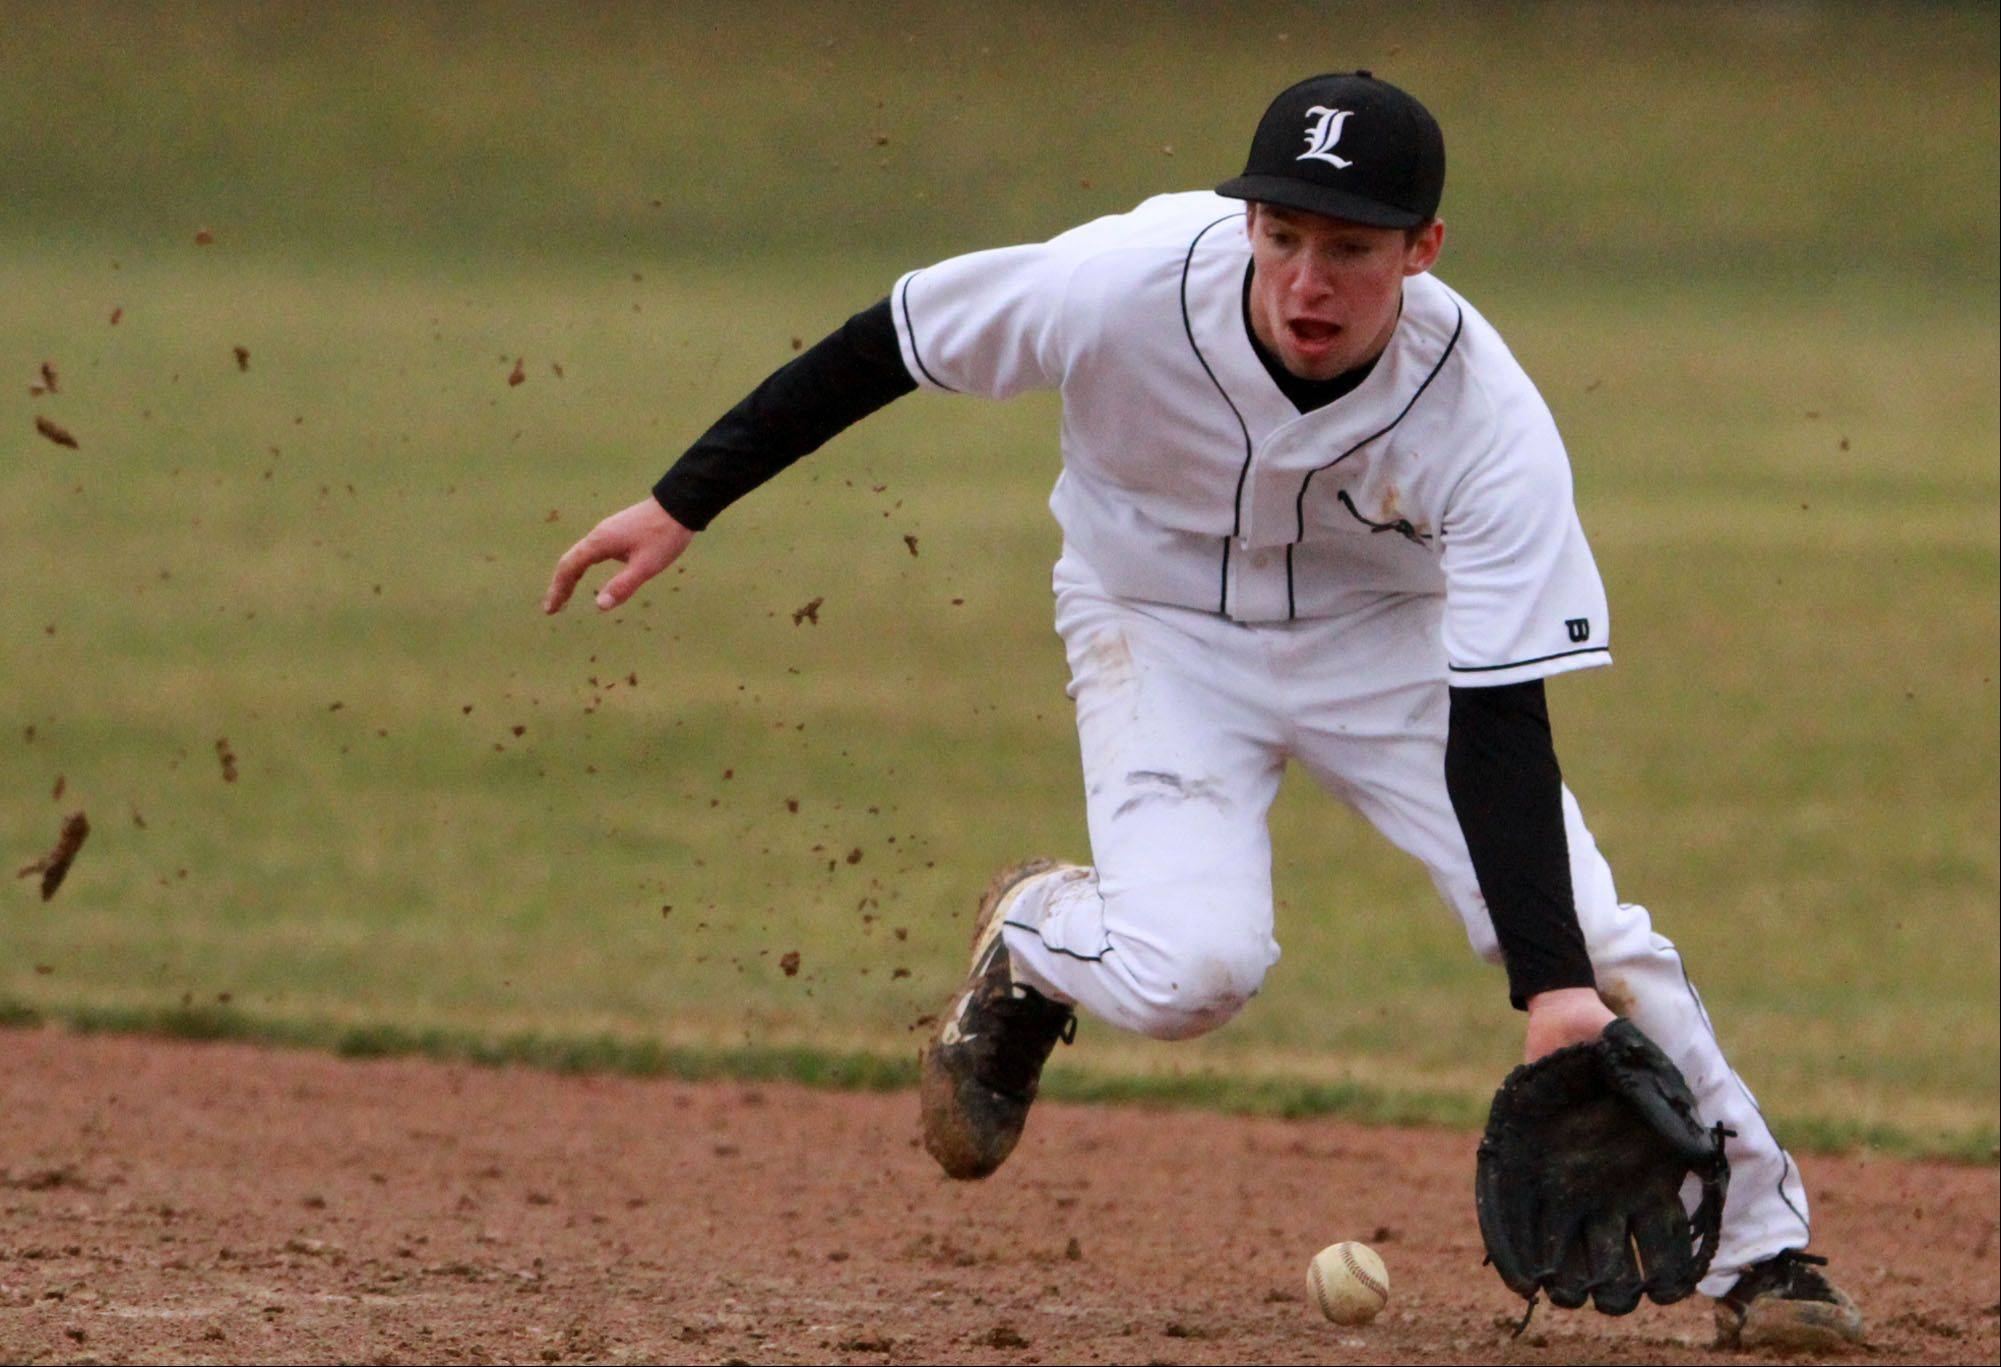 Libertyville shortstop Jimmy Govern scoops up a grounder against Antioch at Libertyville on Friday.